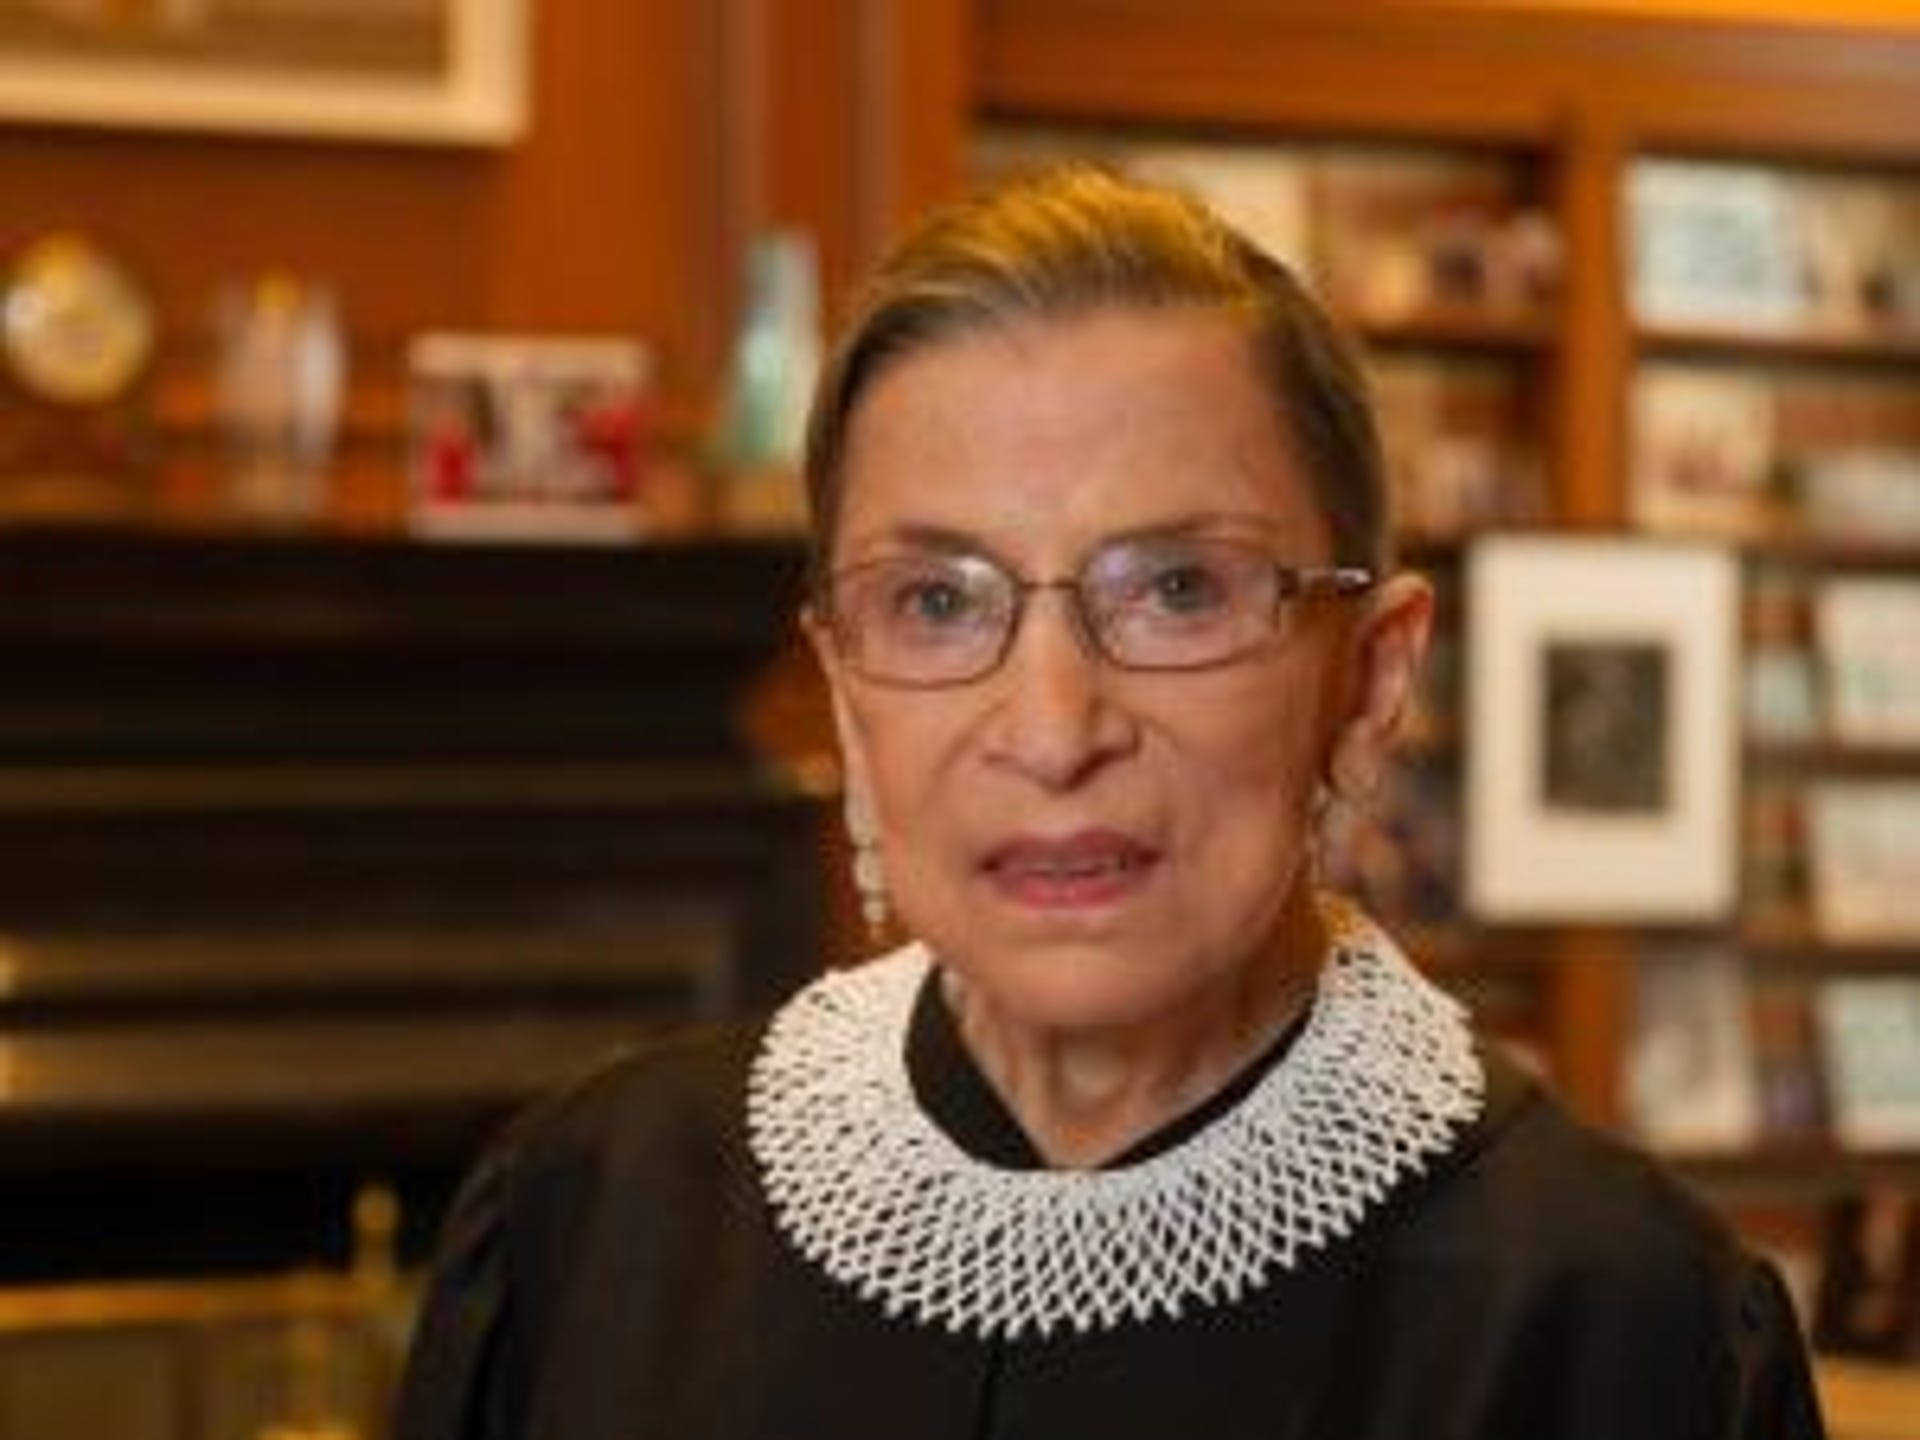 Justice Ruth Bader Ginsburg is presiding over popular culture